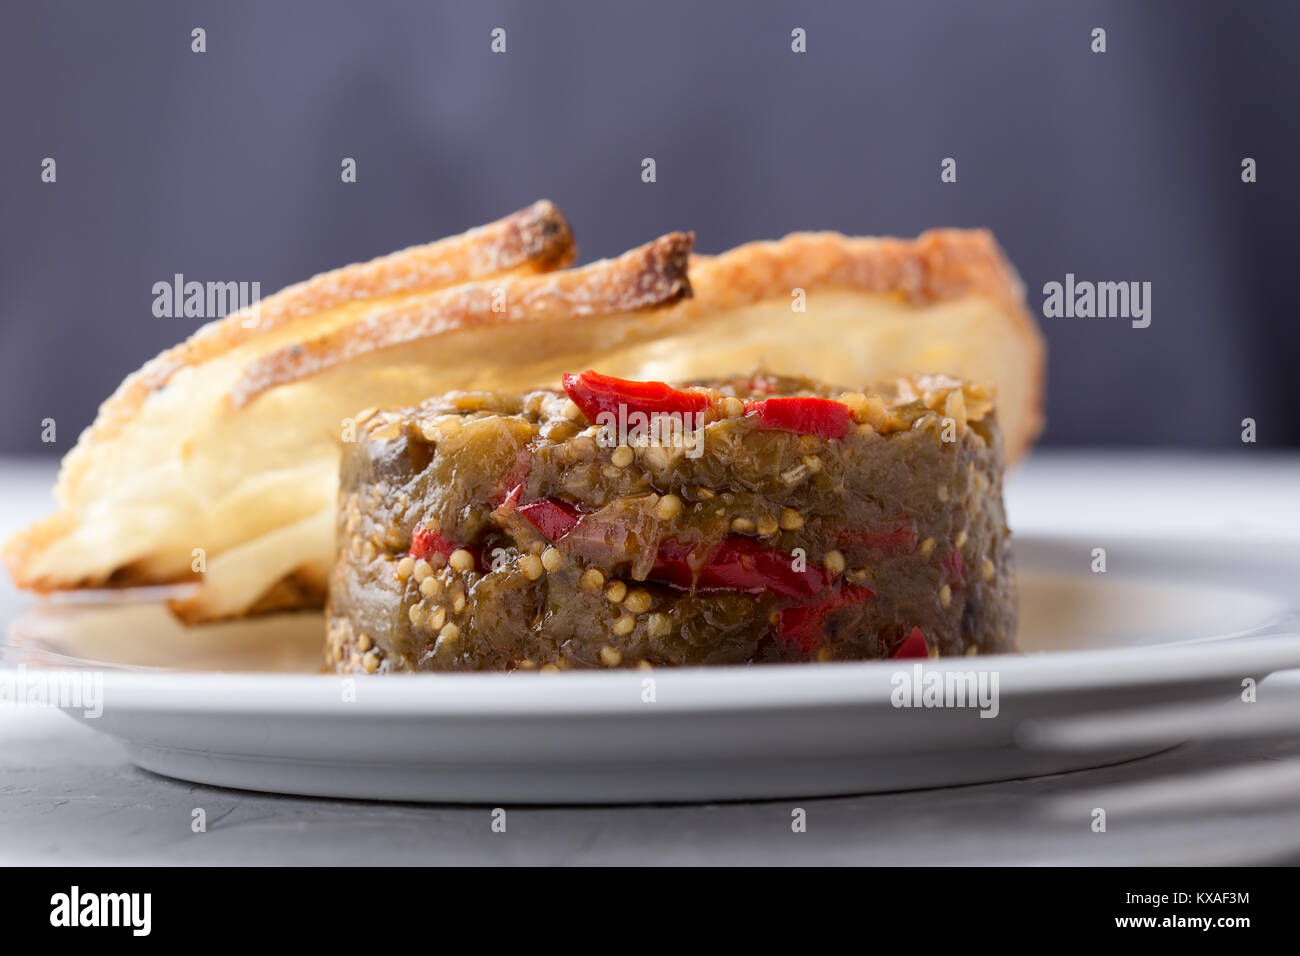 Appetizer of eggplant and red bell pepper, vegetable dip served with toasted bread on white plate Stock Photo